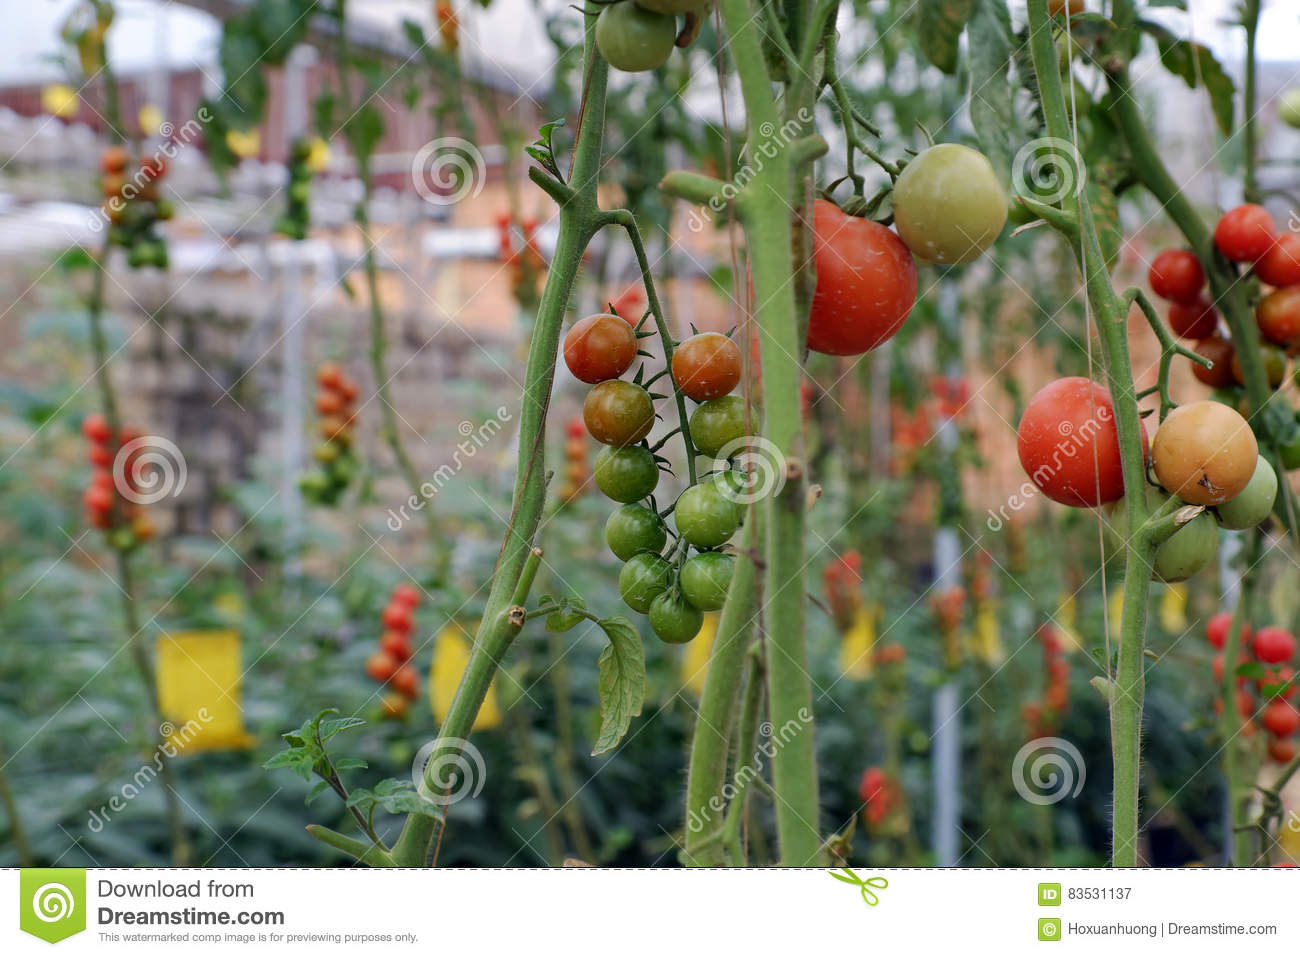 xtend raised gallery garden tomato home